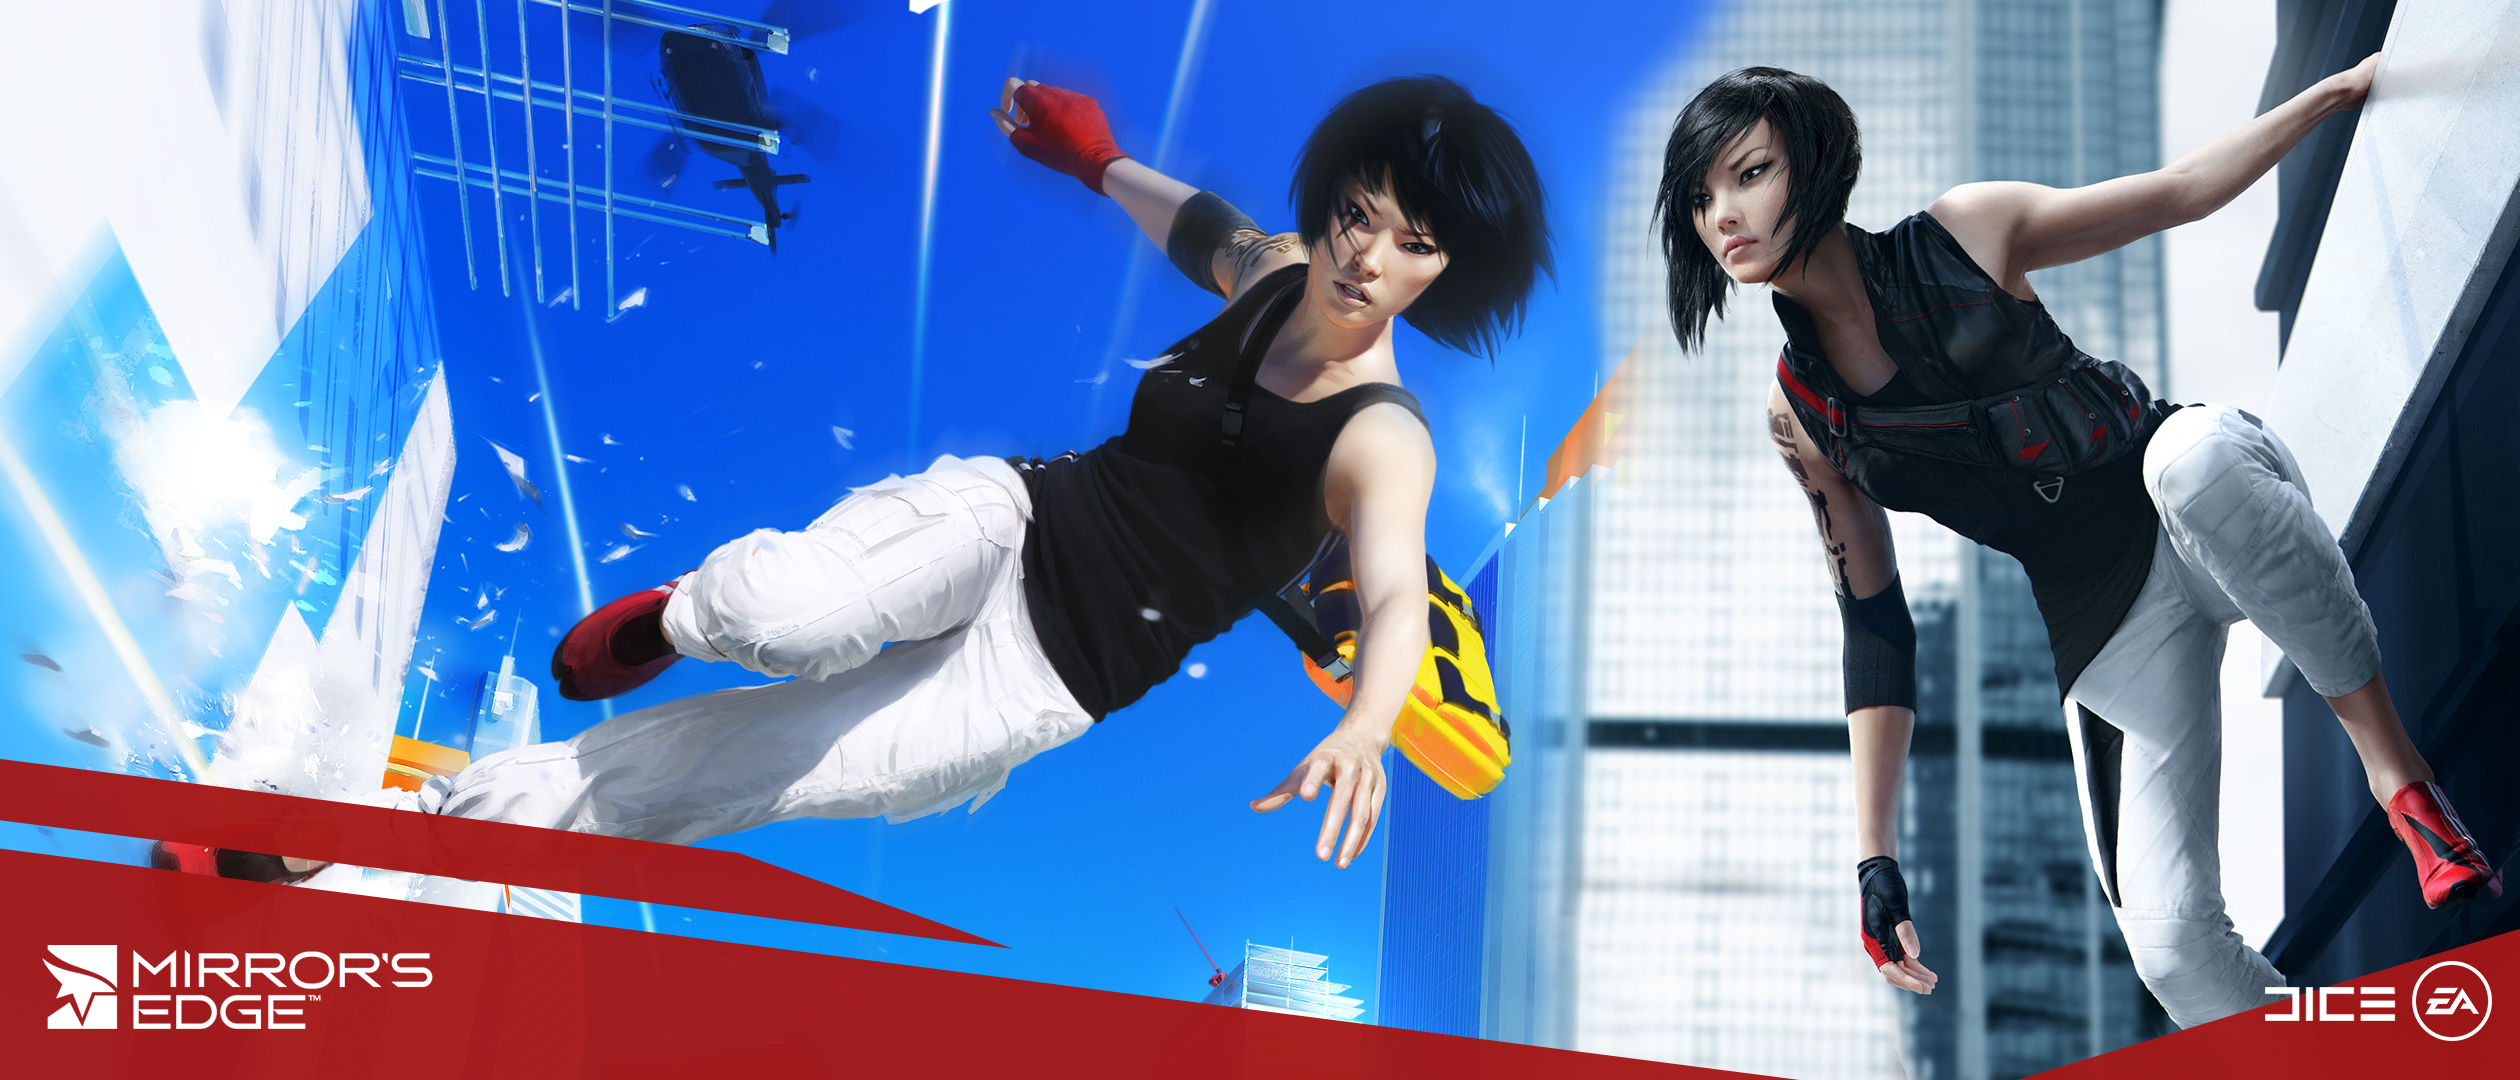 [2520x1080] I made an ultrawide Mirror's Edge wallpaper